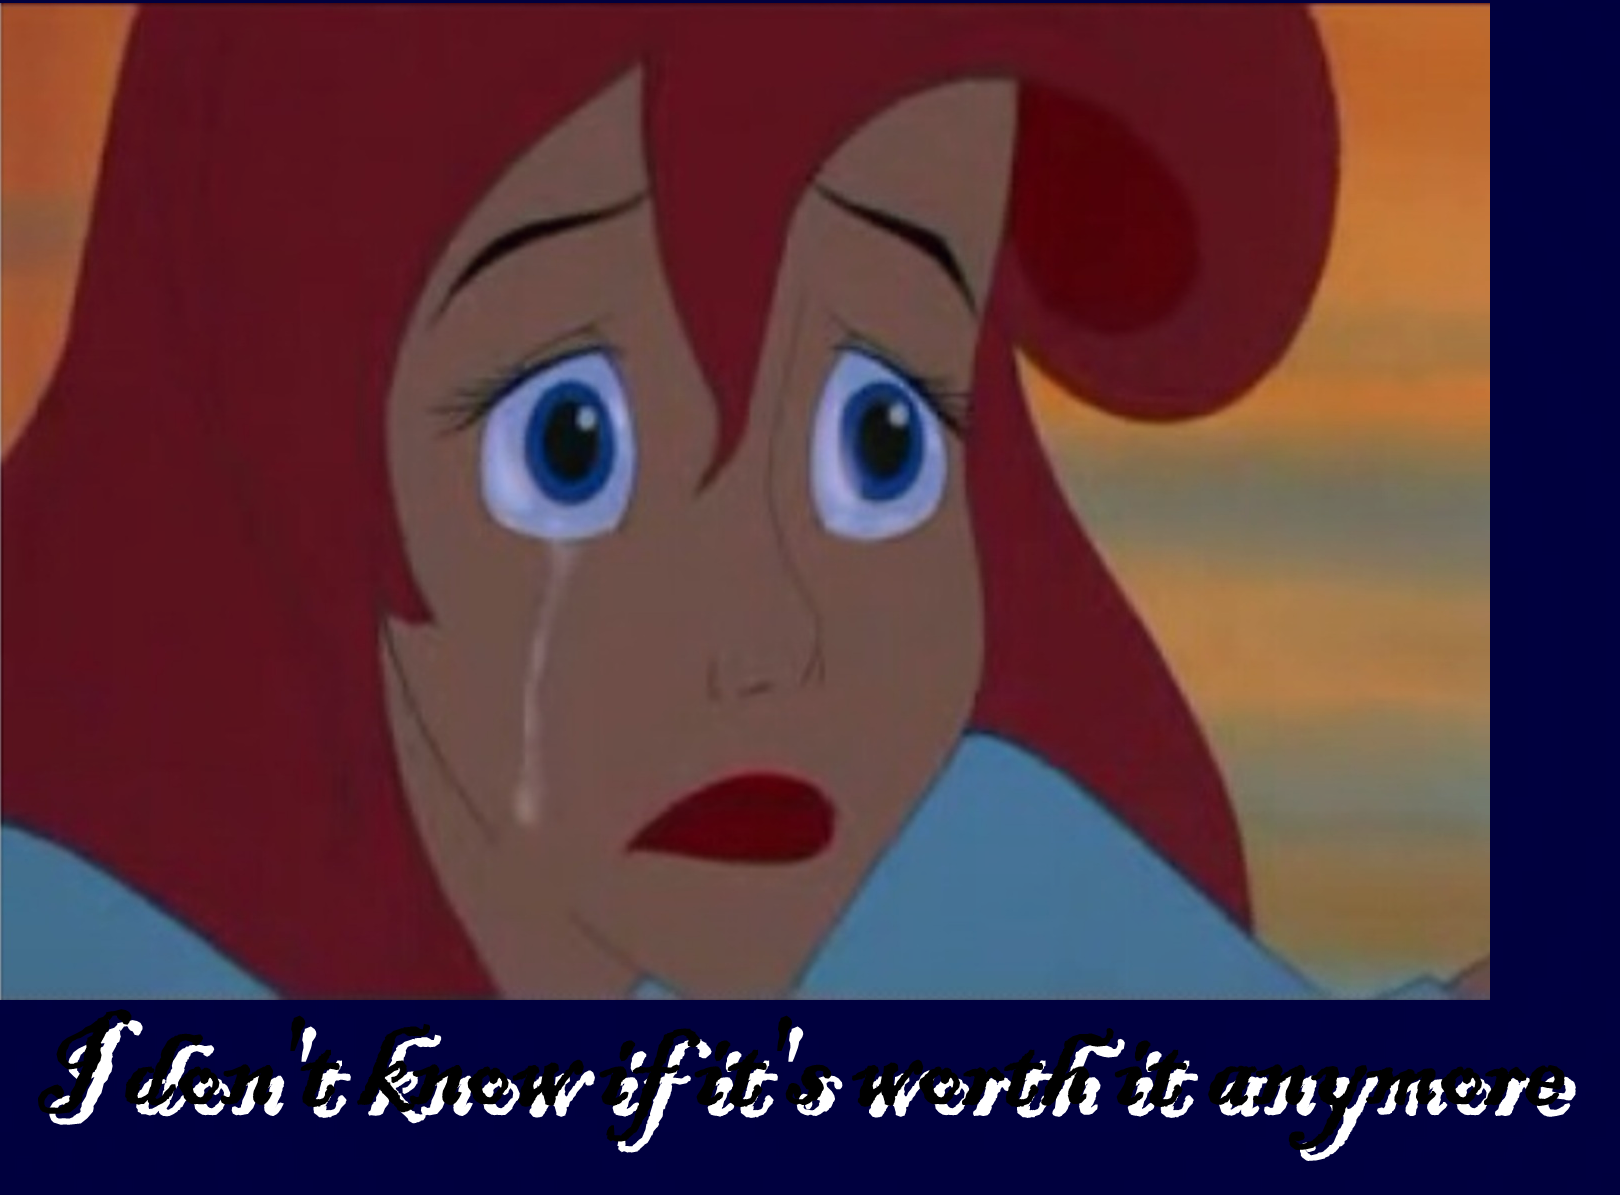 little mermaid psychological disorders 10 beloved disney characters who had serious mental health issues 68 16 1 ariel - the little mermaid disorders: kleptomania body dysmorphic disorder snow white might shack up with seven.